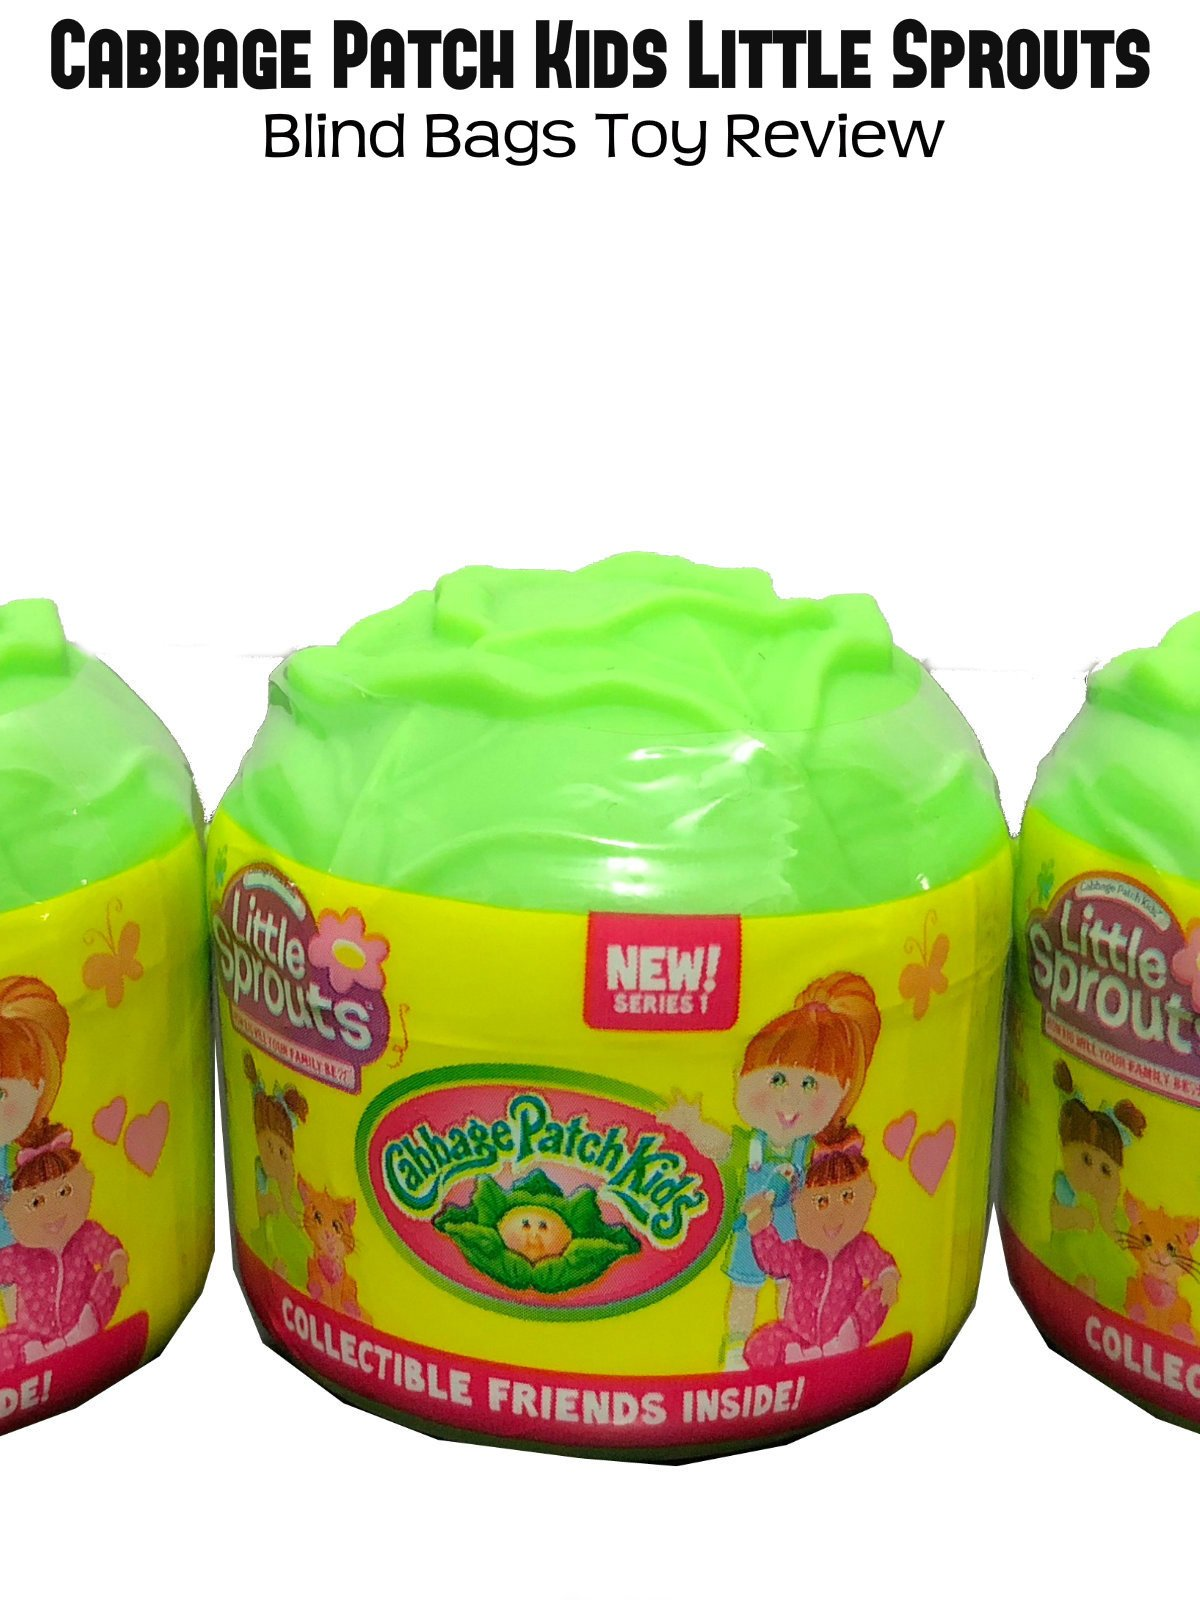 Review: Cabbage Patch Kids Little Sprouts Blind Bags Toy Review